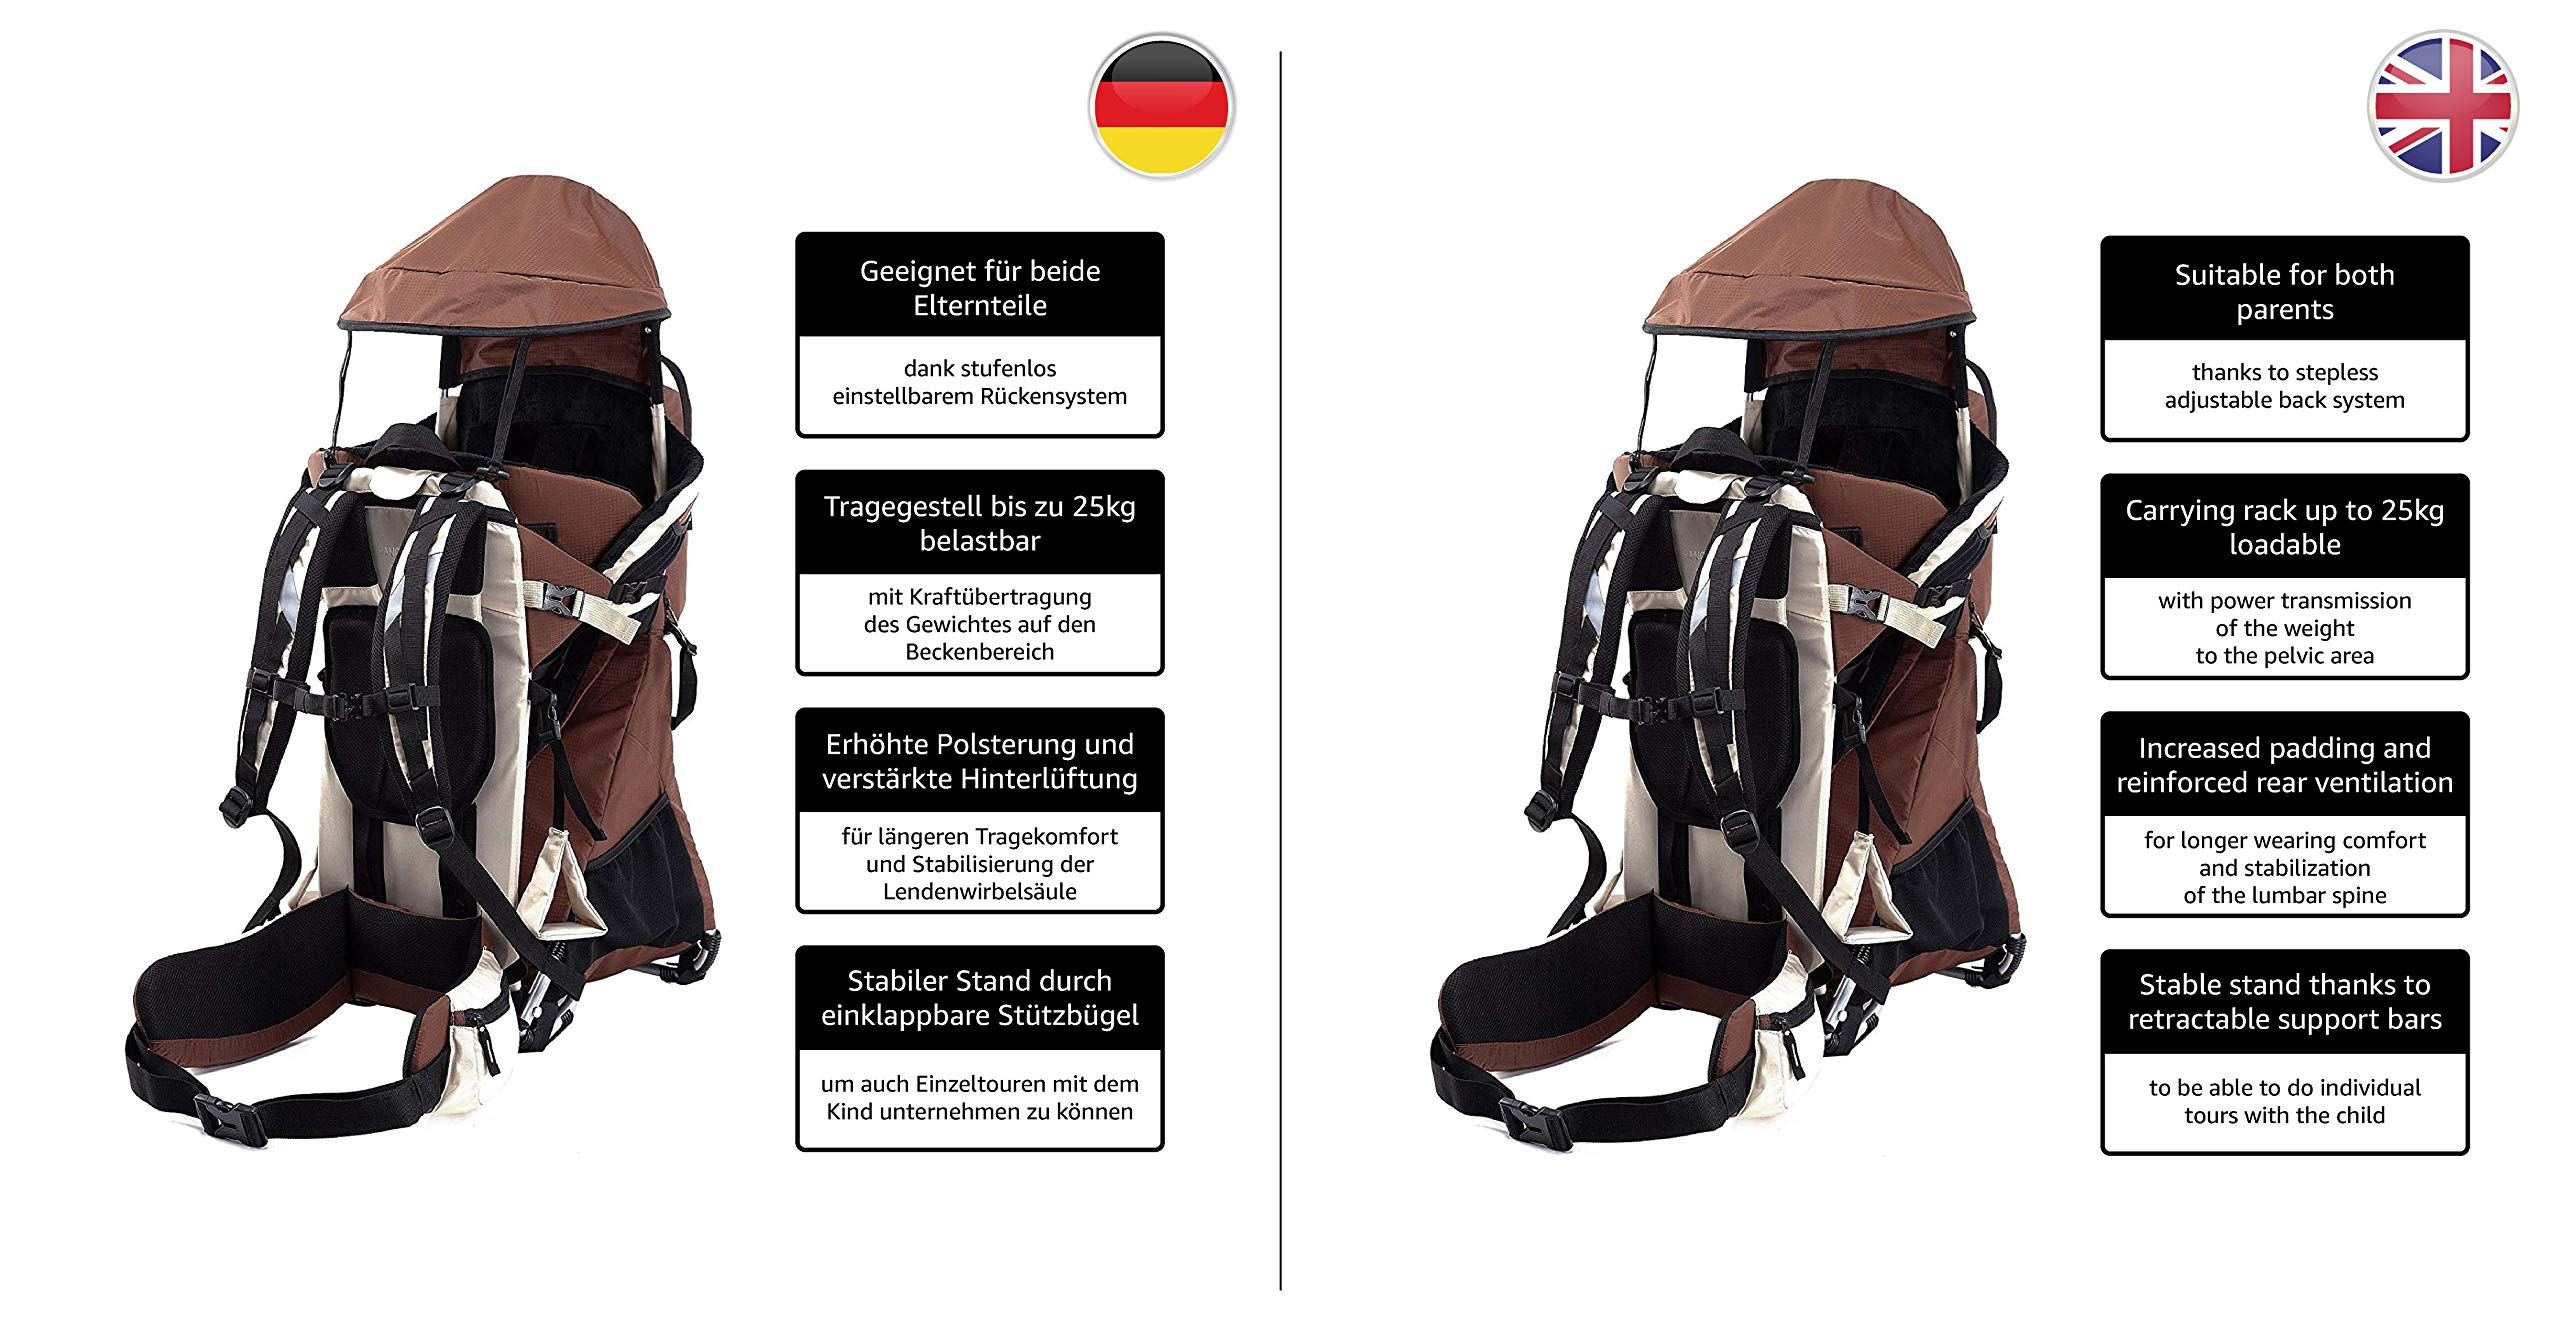 MONTIS RANGER PRO - Premium Backpack/Child Carrier - Holds up to 25kg M MONTIS OUTDOOR  4